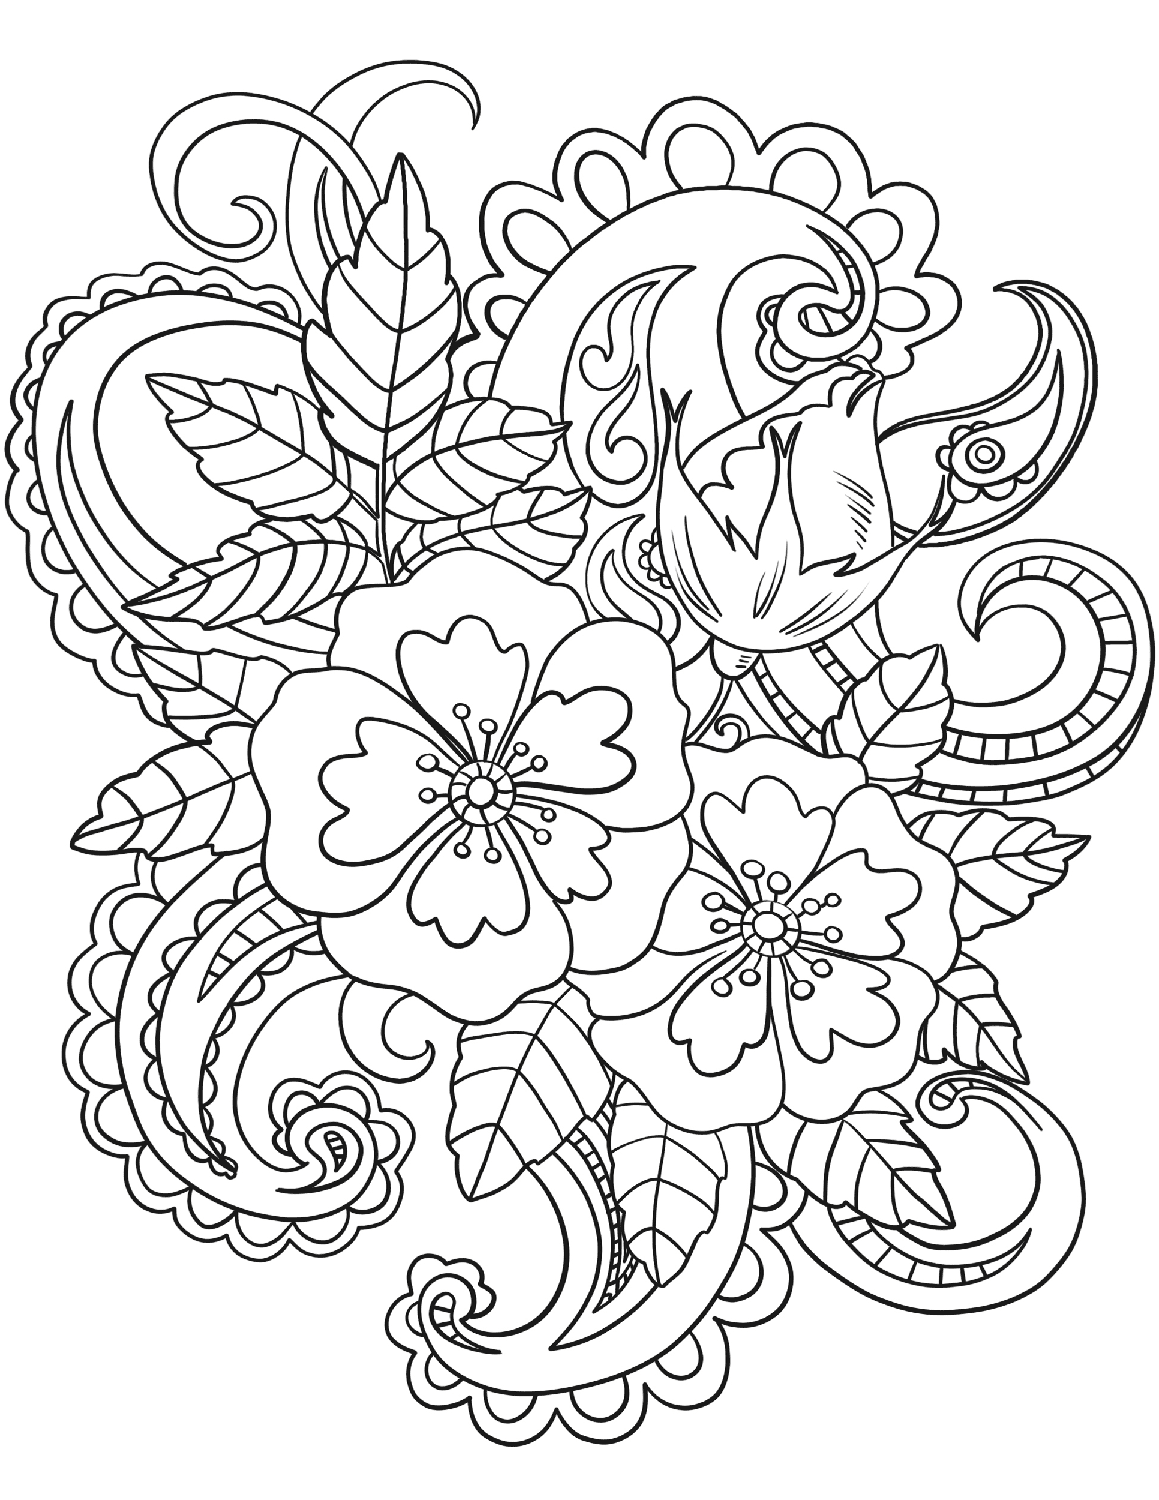 flower pattern to color flowers paisley flowers adult coloring pages flower to pattern color